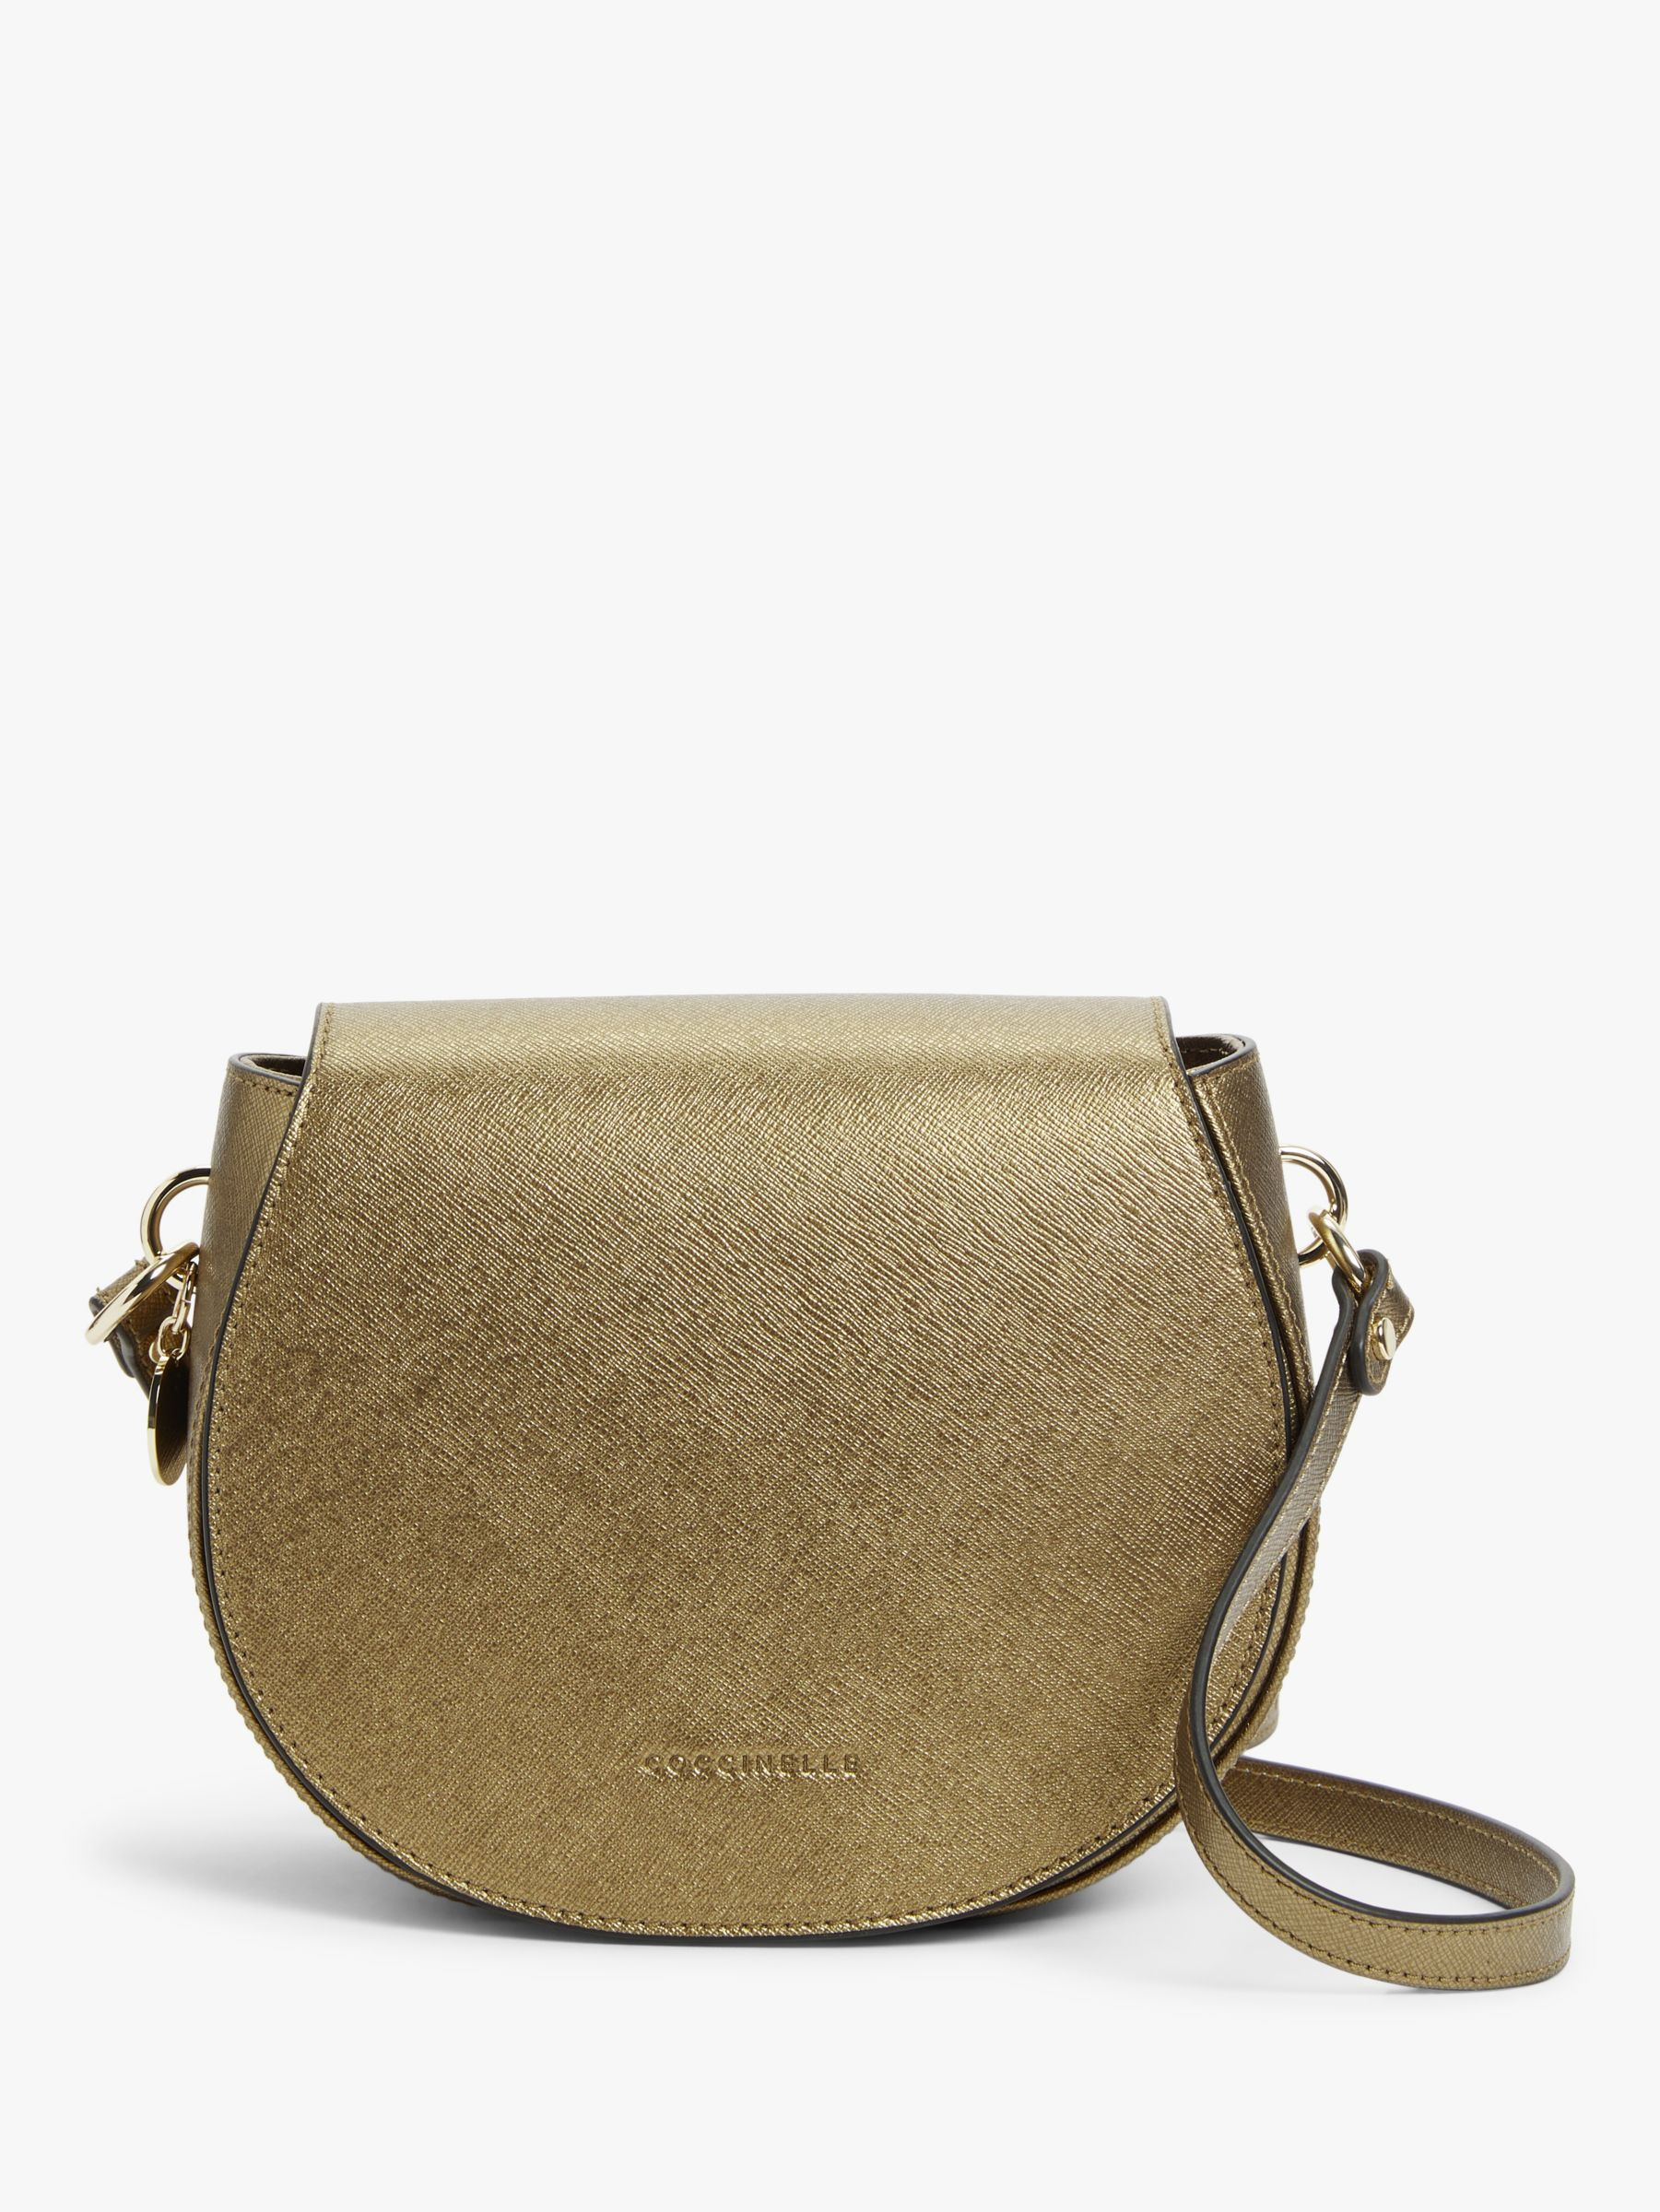 Coccinelle Coccinelle Alpha Saffiano Leather Round Cross Body Bag, Brass